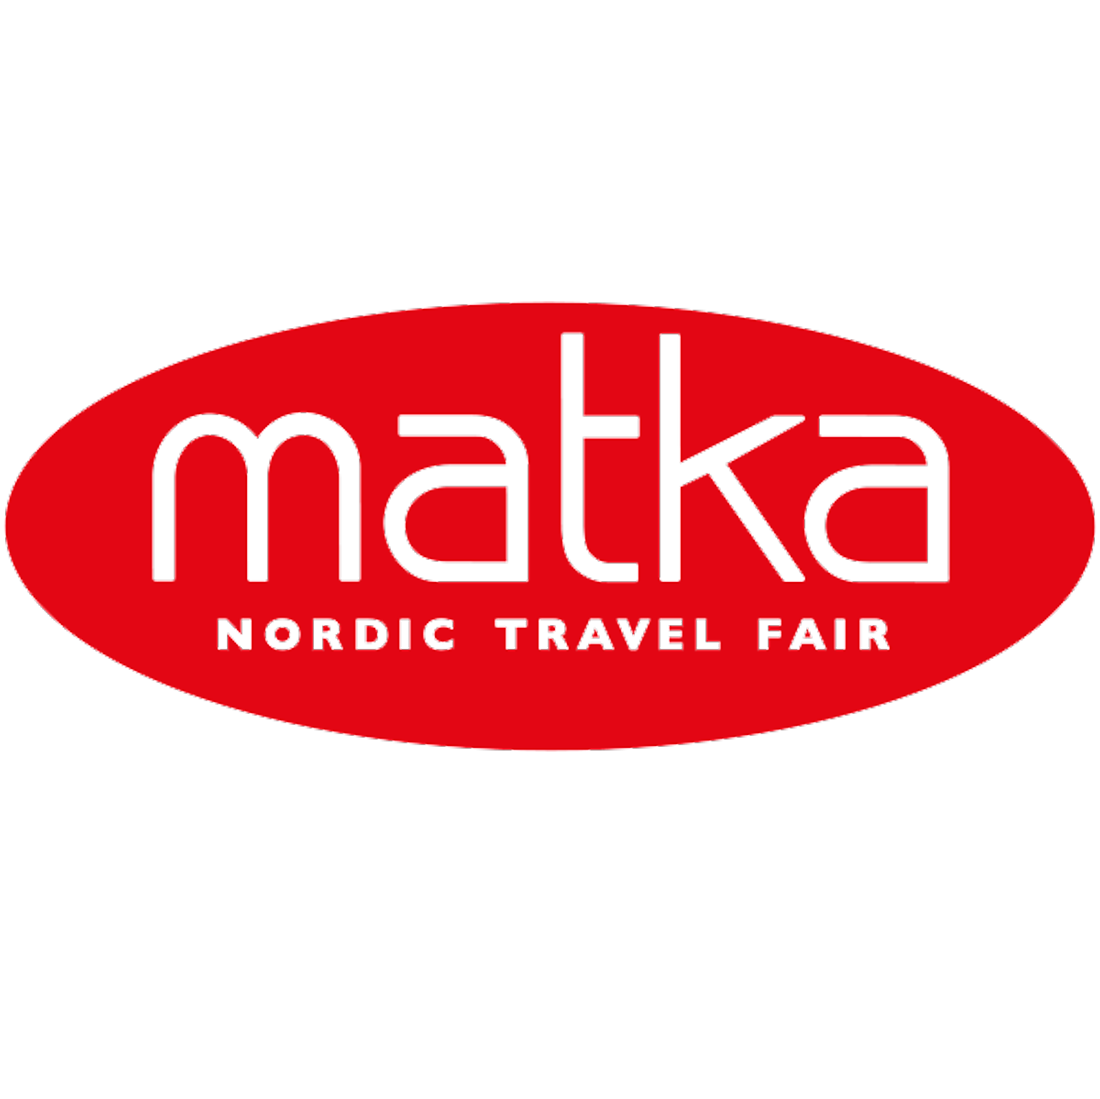 Metka Nordic Travel Fair